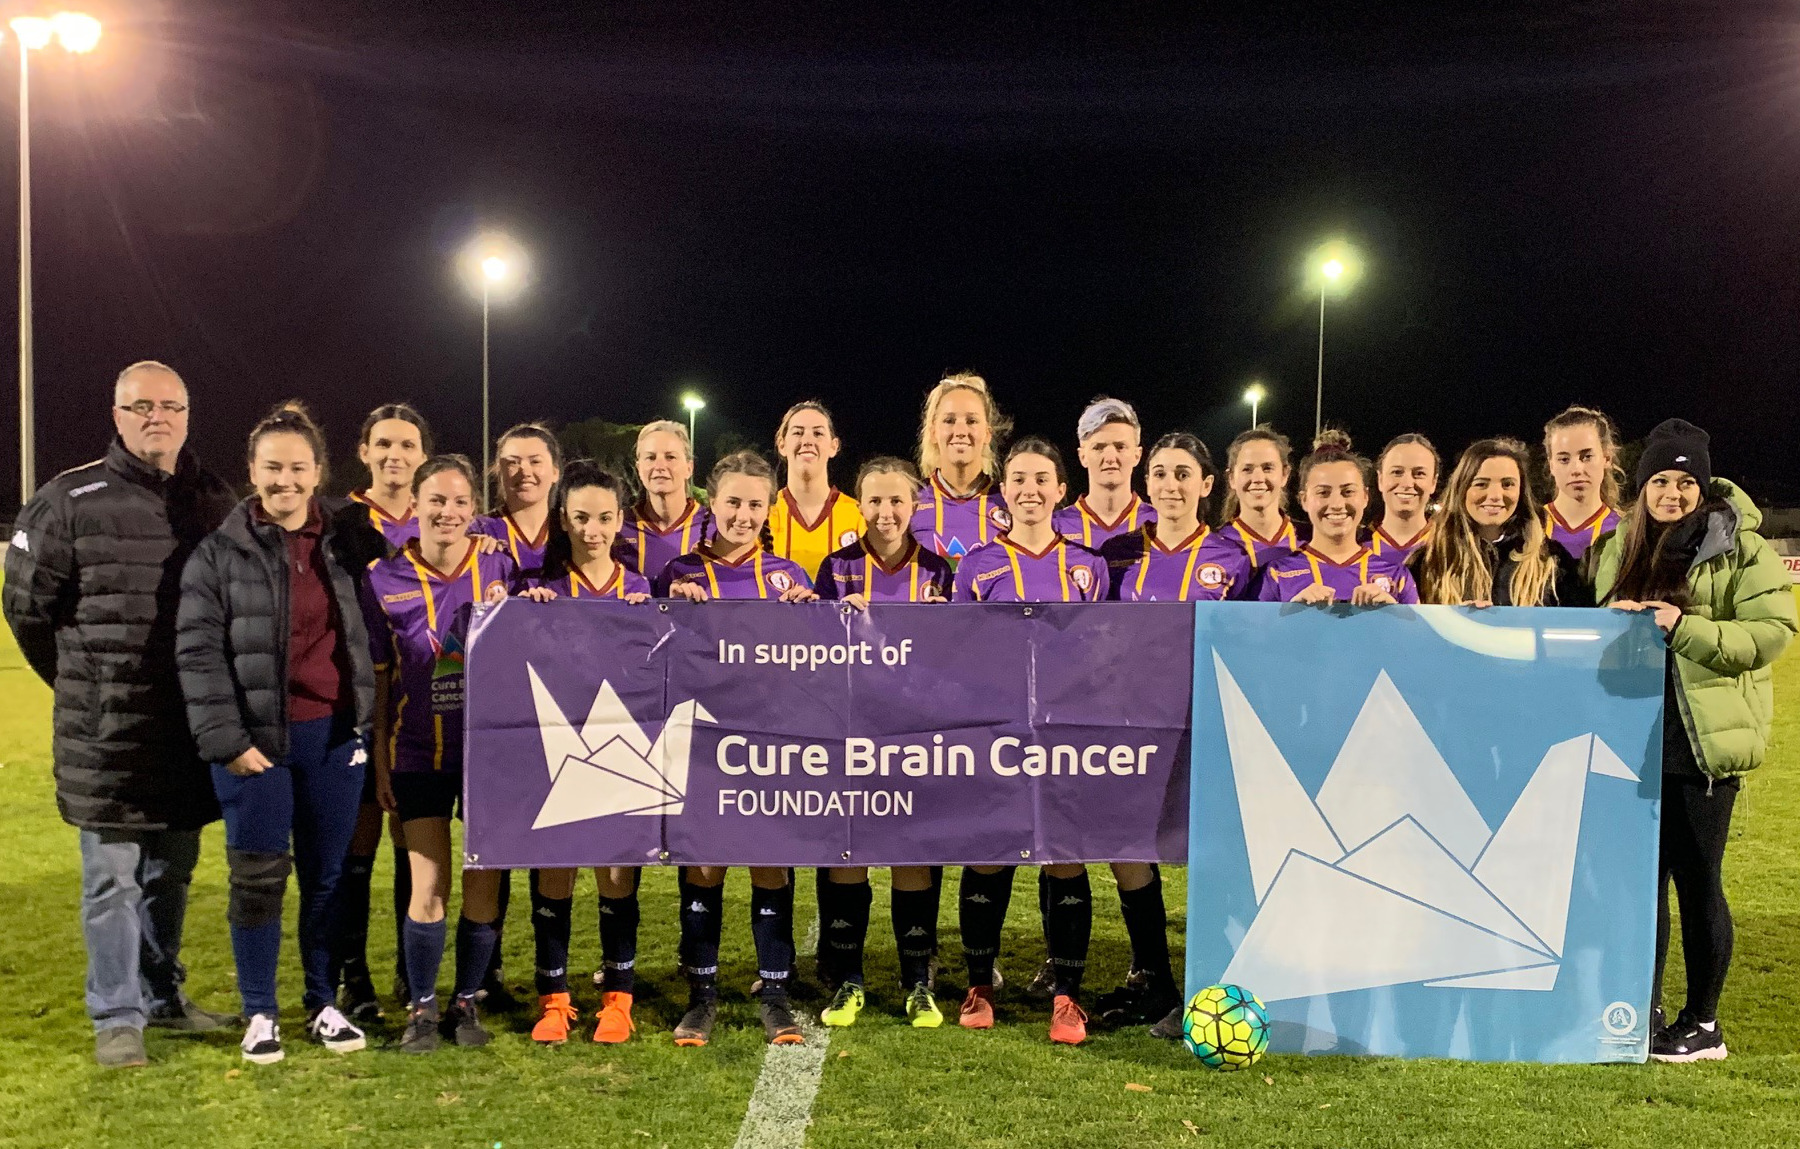 Senior Women's Charity – Cure Brain Cancer